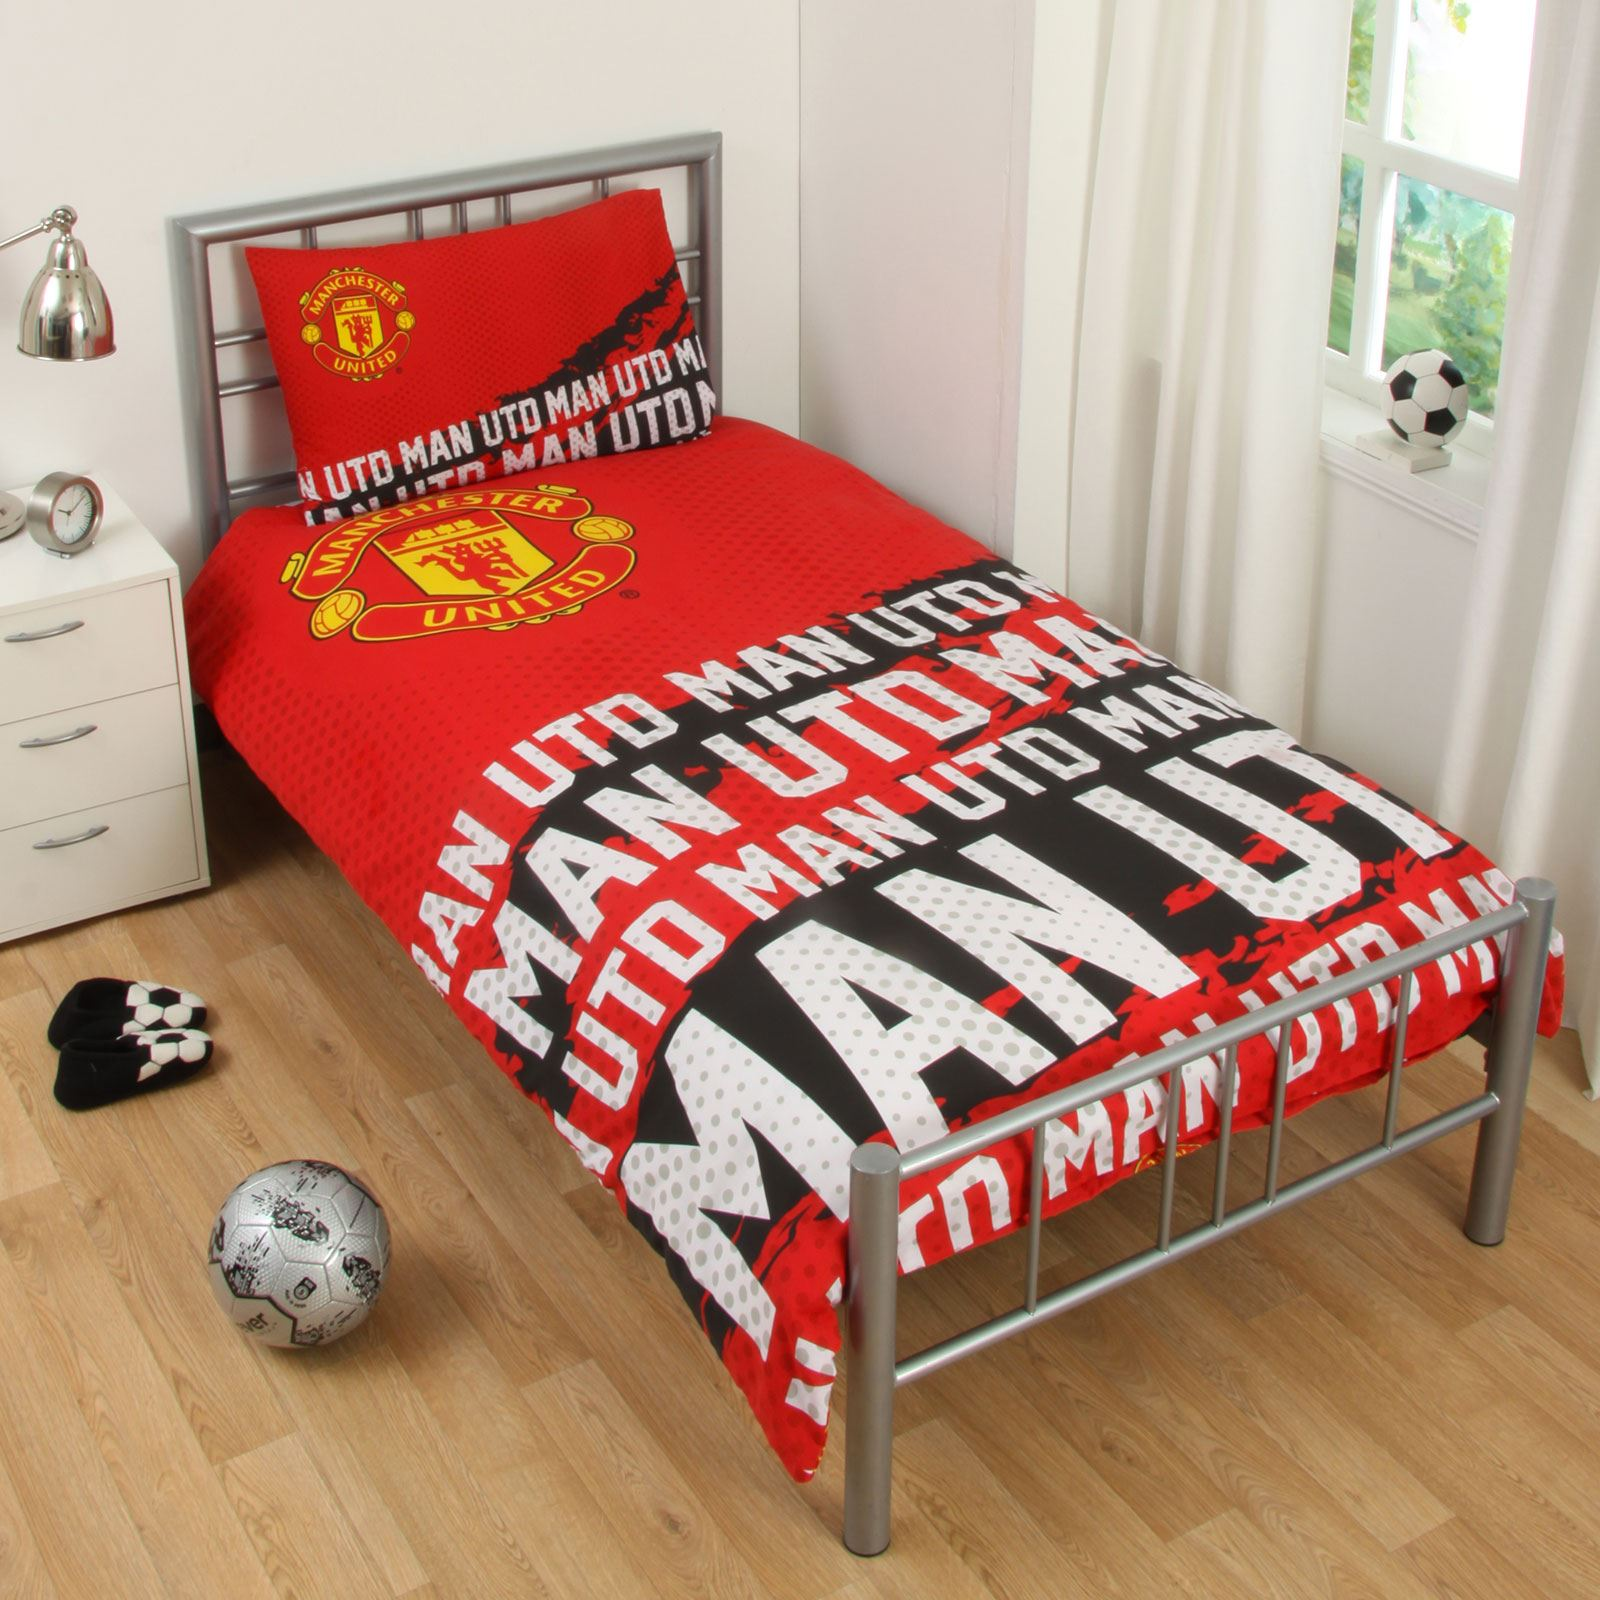 Home Furniture Diy Bedding Sets Duvet Covers Kids Manchester United Fc Print Football Club Single Duvet Quilt Cover Set Mtmstudioclub Com